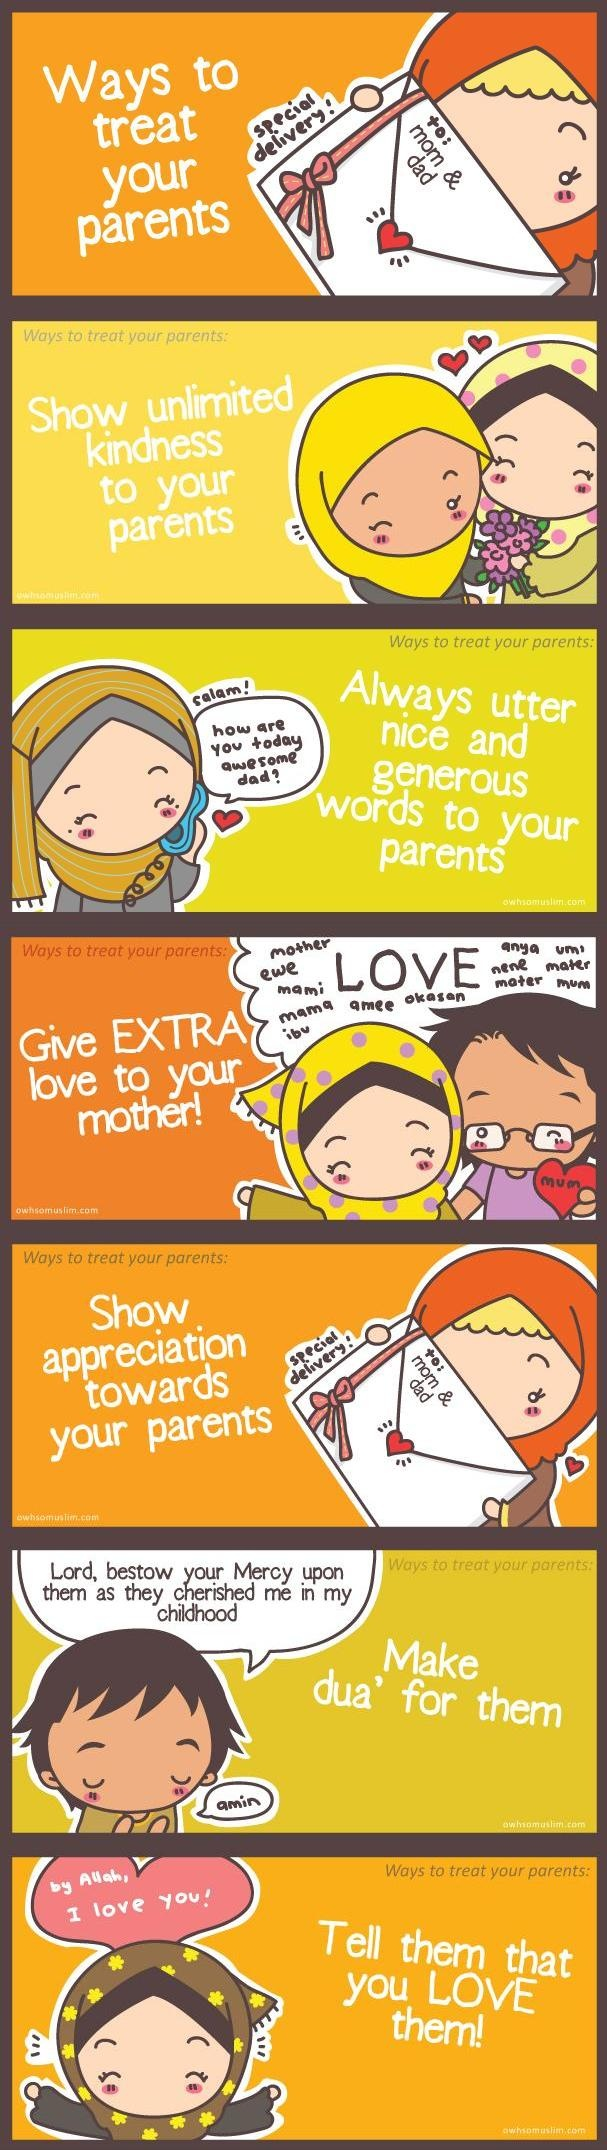 Masya Allah ;')  Having parents is one of the biggest gift given to us by Al-Mighty Allah . the ones who will always love and care for us no matter when or what happens . Alhamdulillah for our parents